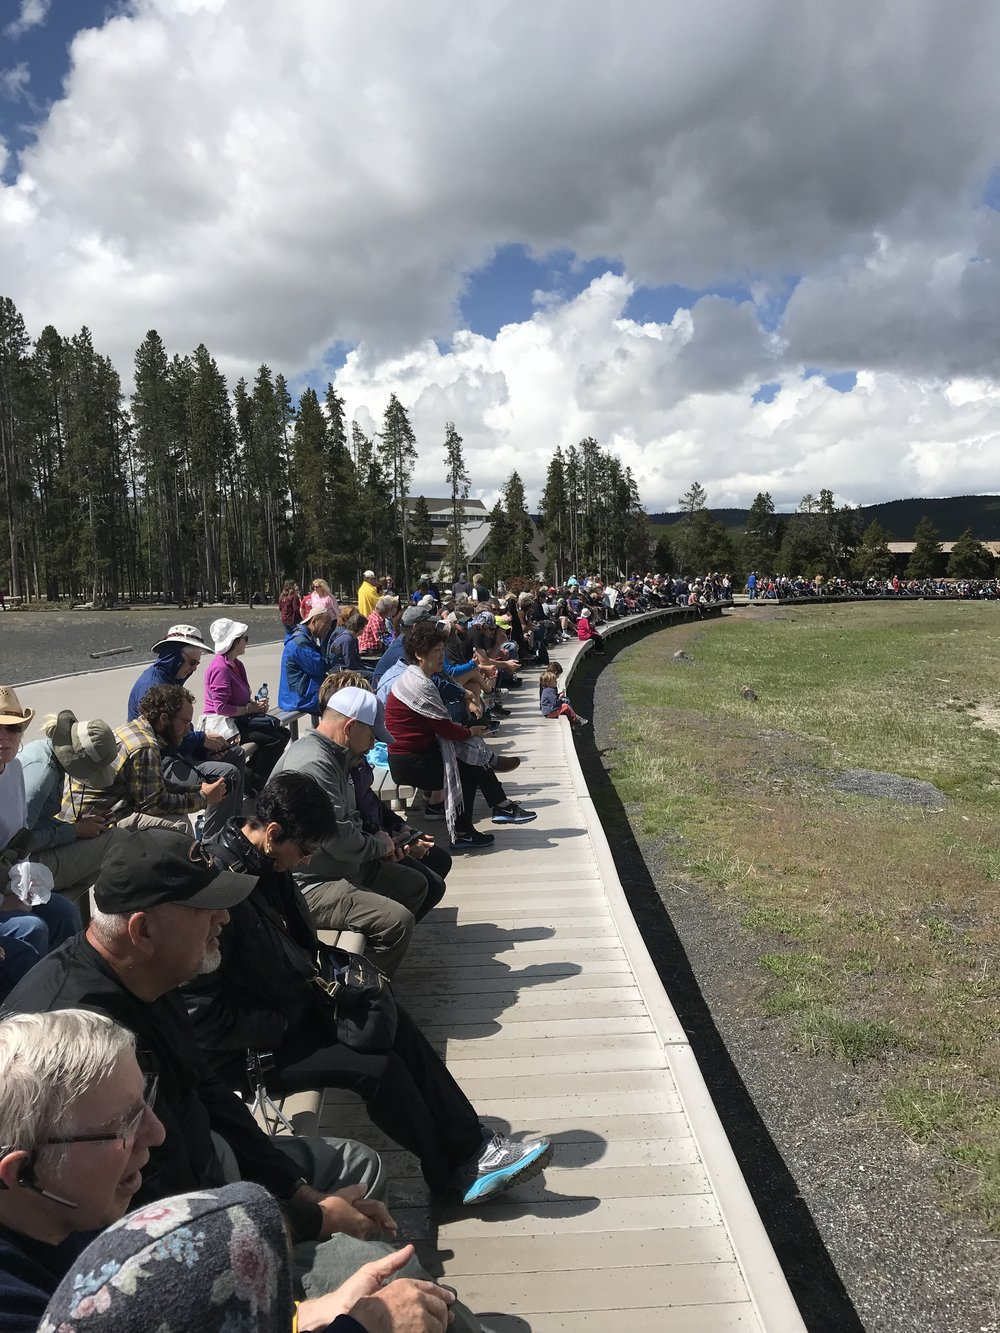 The crowds of people waiting for Old Faithful to make an appearance